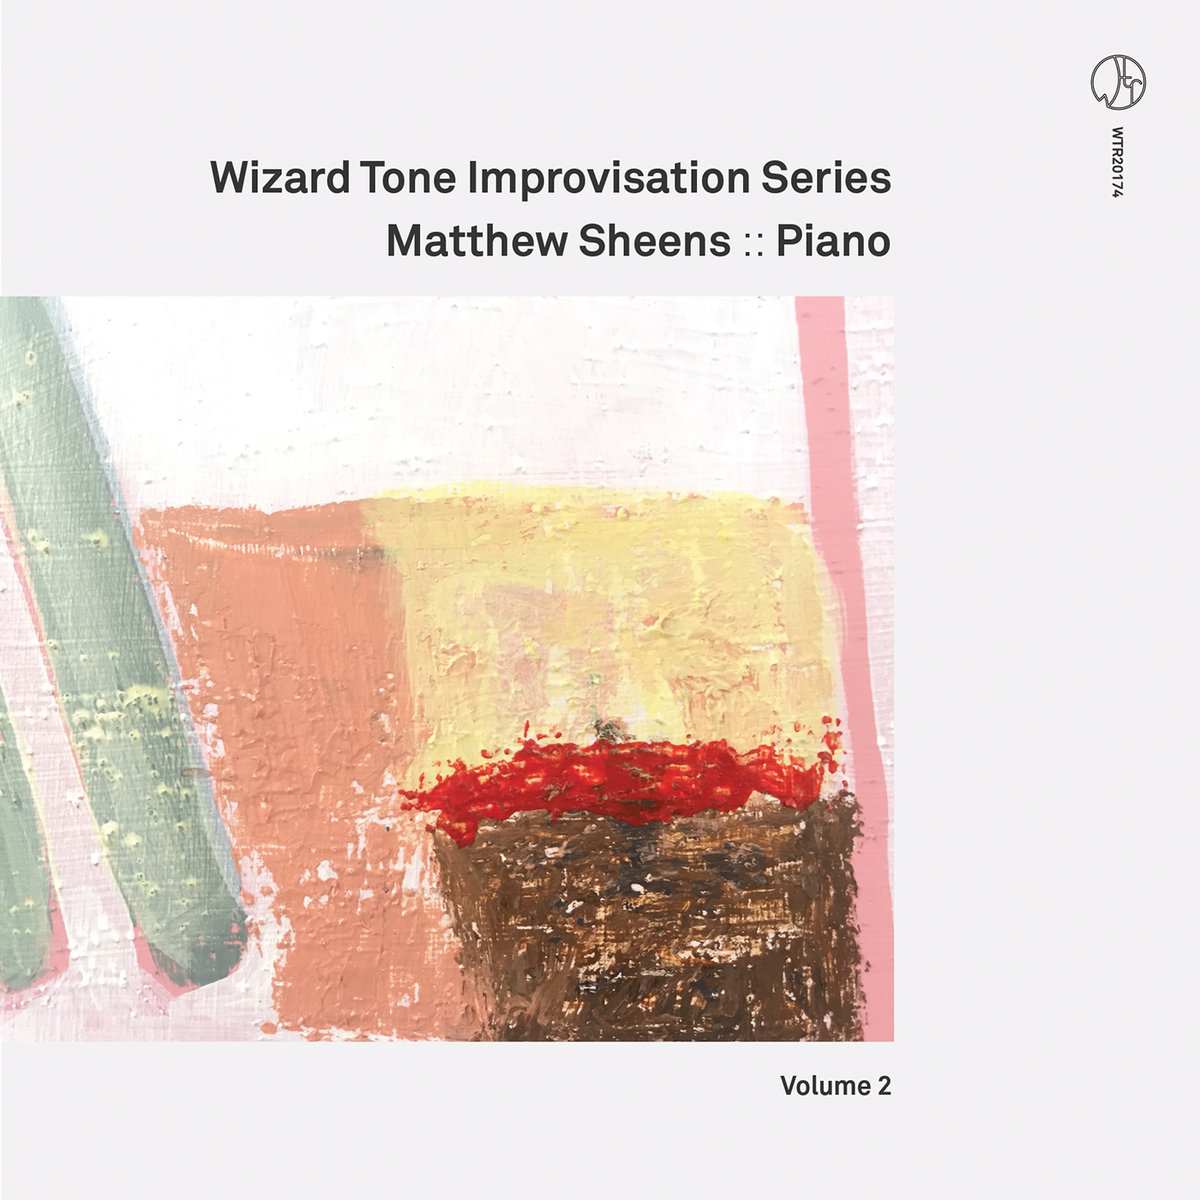 Wizard Tone Improvisation Series Volume 2: Matthew Sheens [Recorded (JB & JP), Mixed & Mastered (JP), Produced (AP), WTR]